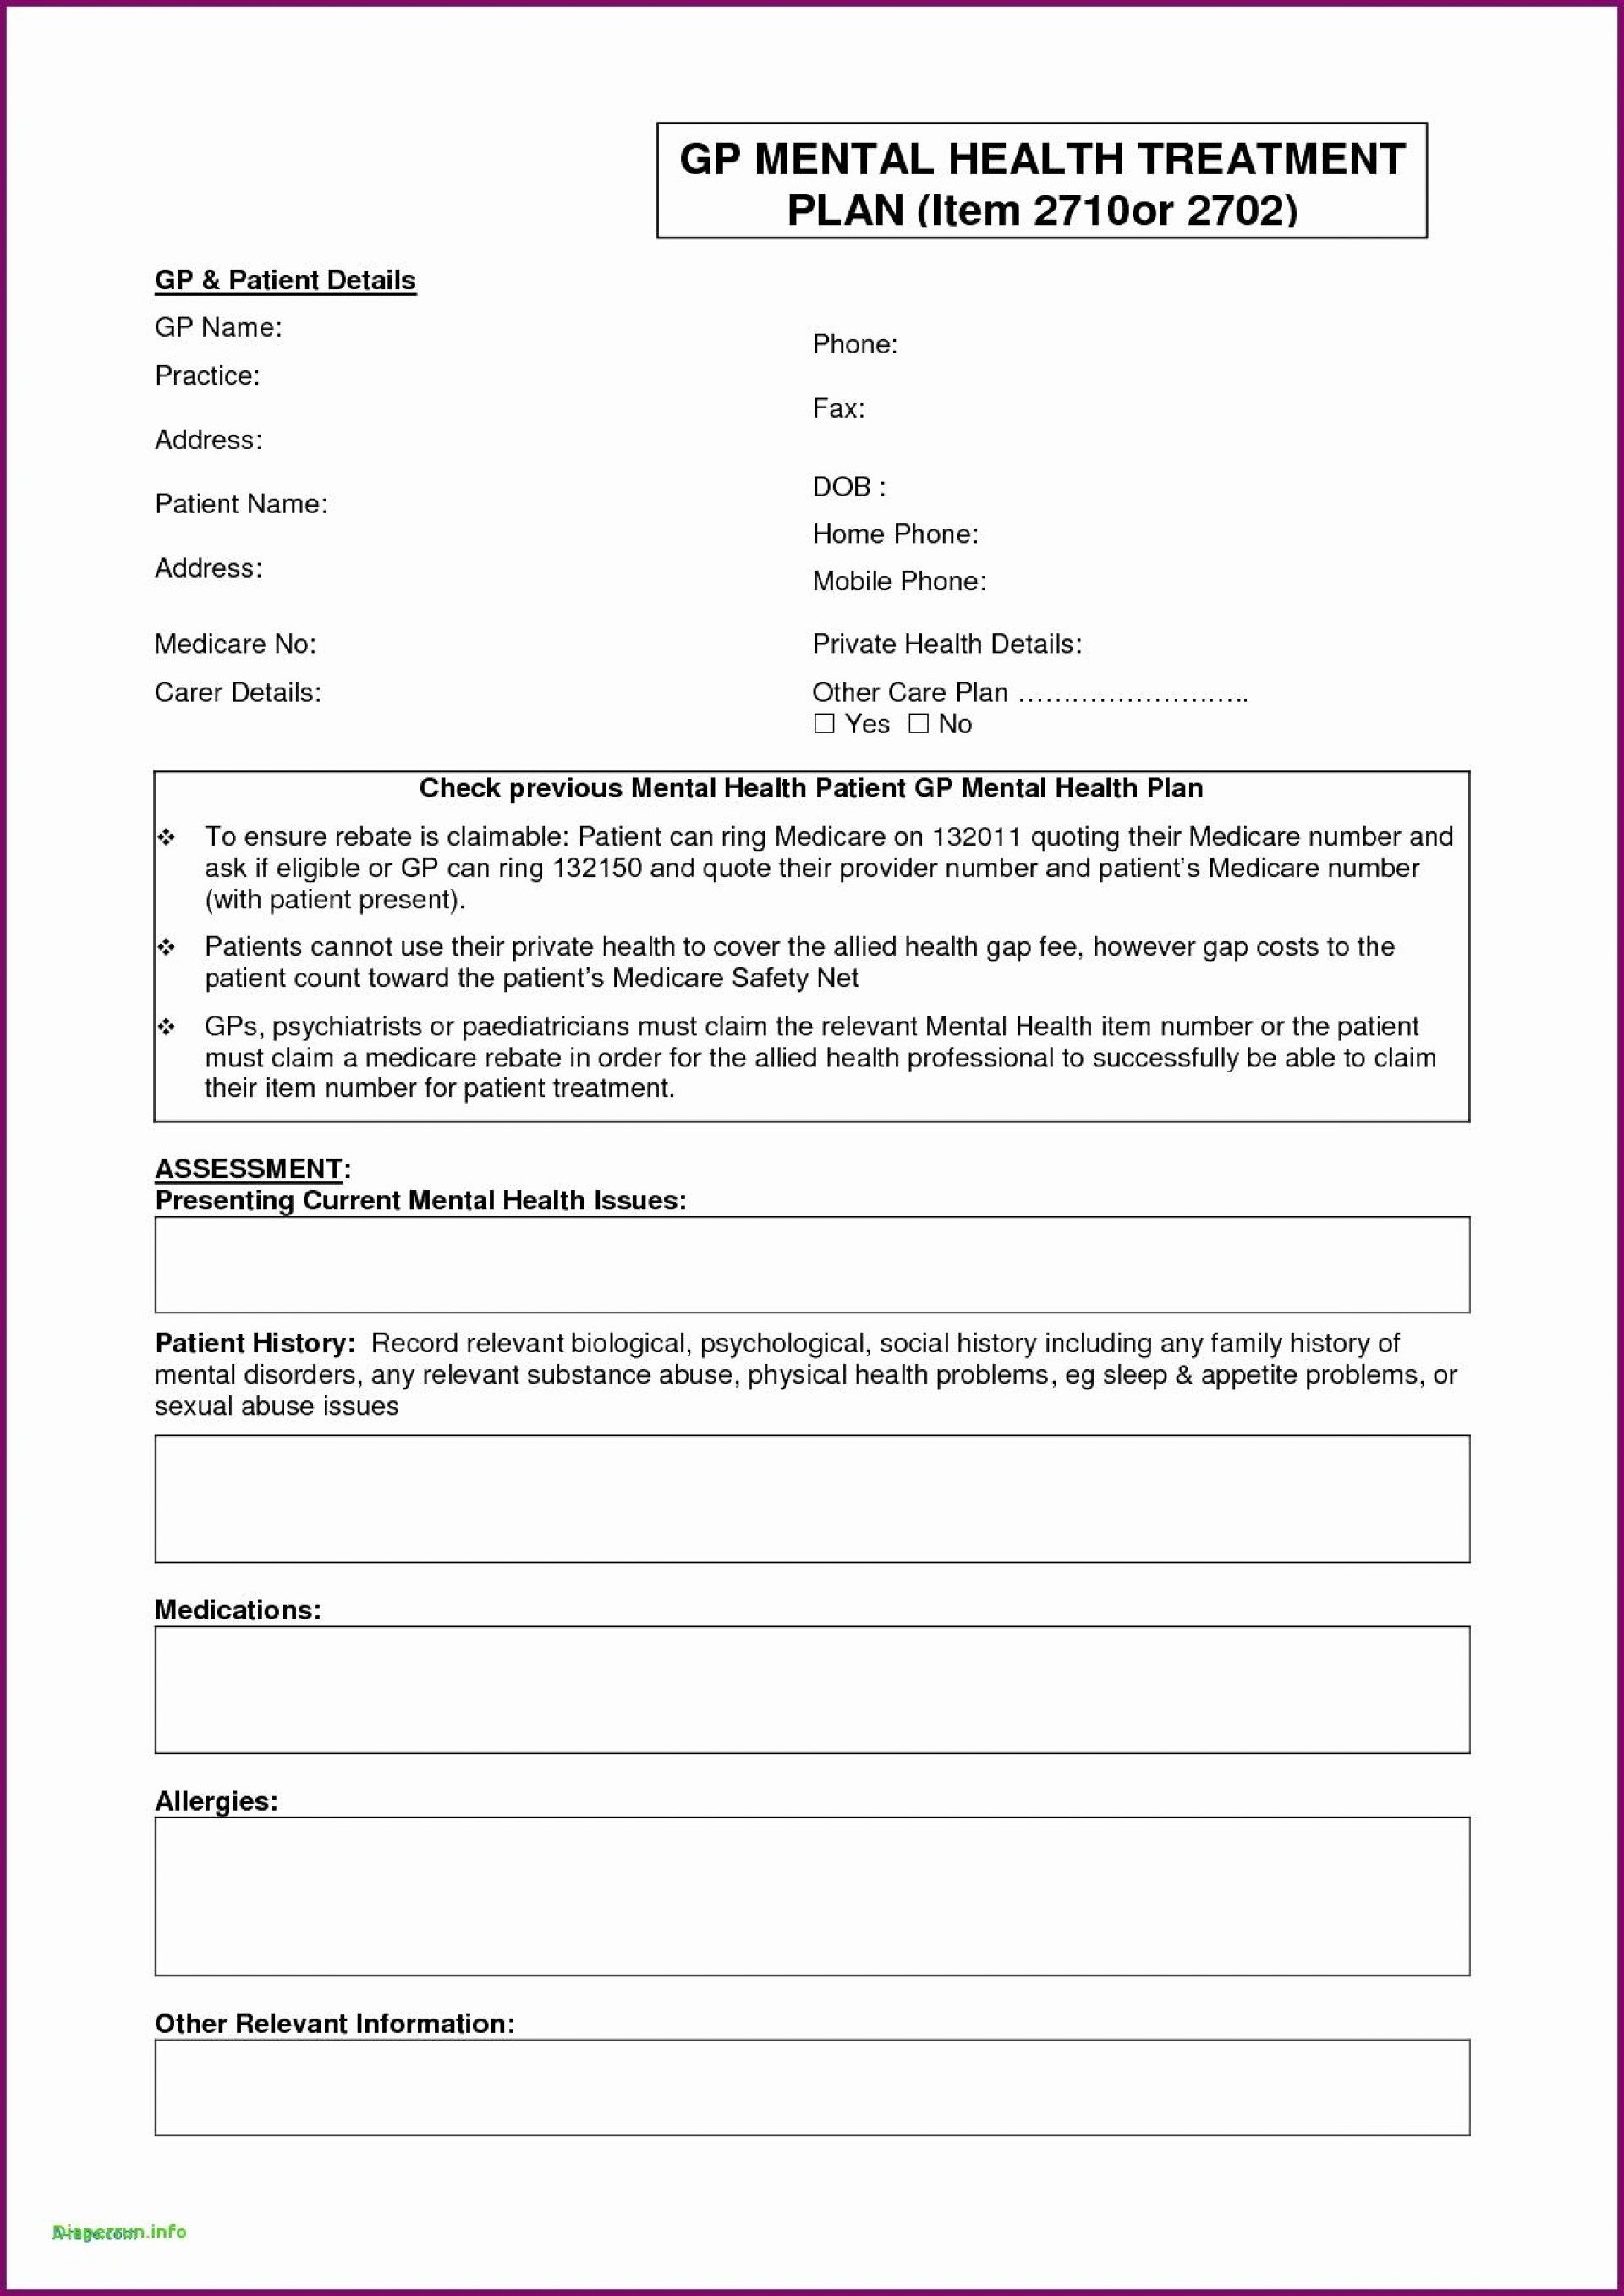 Mental Health Treatment Plan Template Awesome 013 Treatment Plan Template Mental Health Vatel Luxury